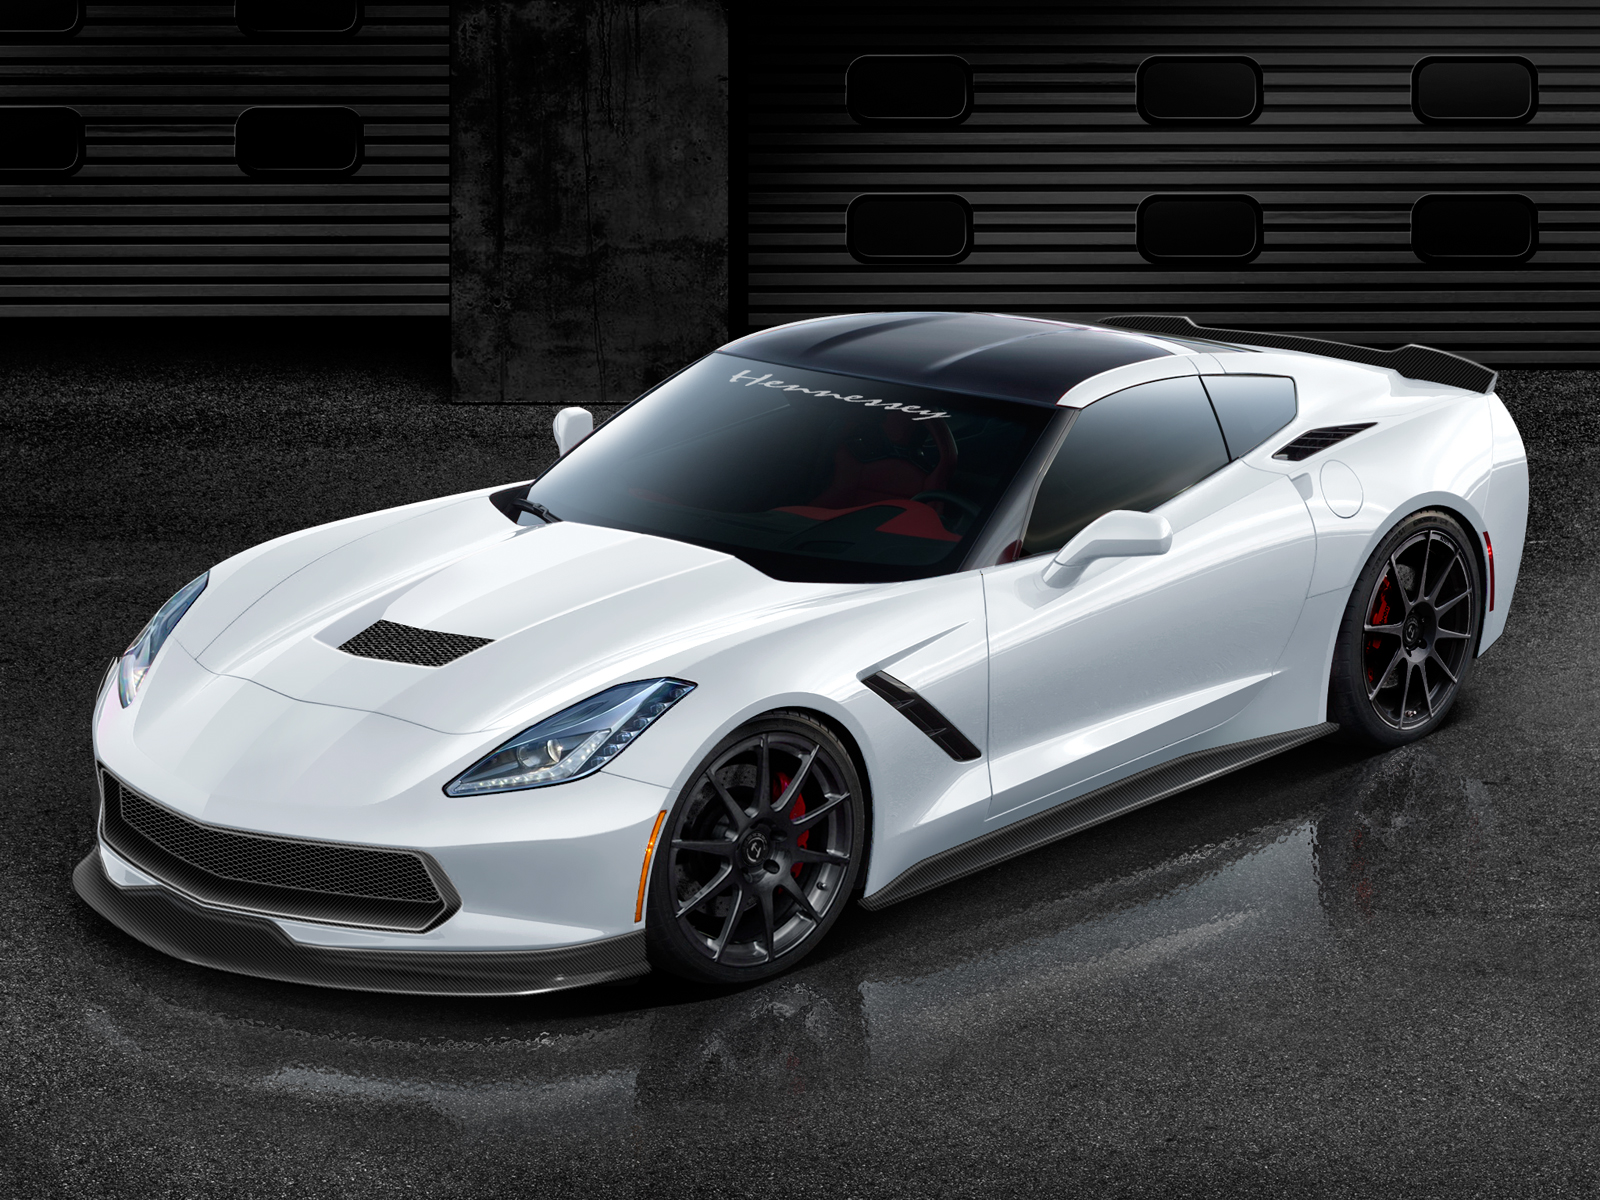 2014 corvette stingray c7 by hennessey performance. Cars Review. Best American Auto & Cars Review